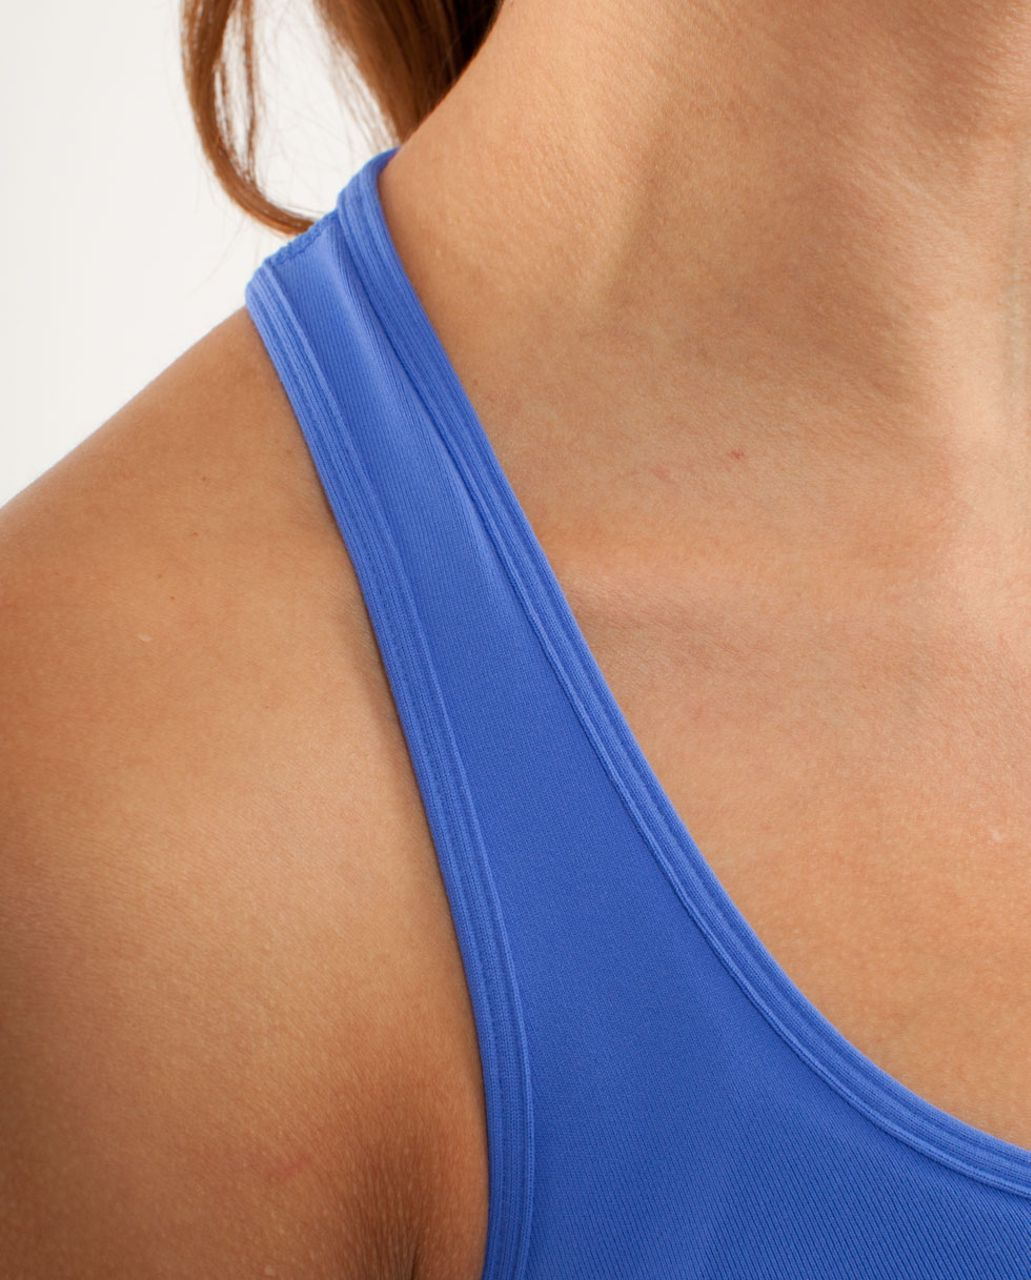 Lululemon Cool Racerback - Rocksteady